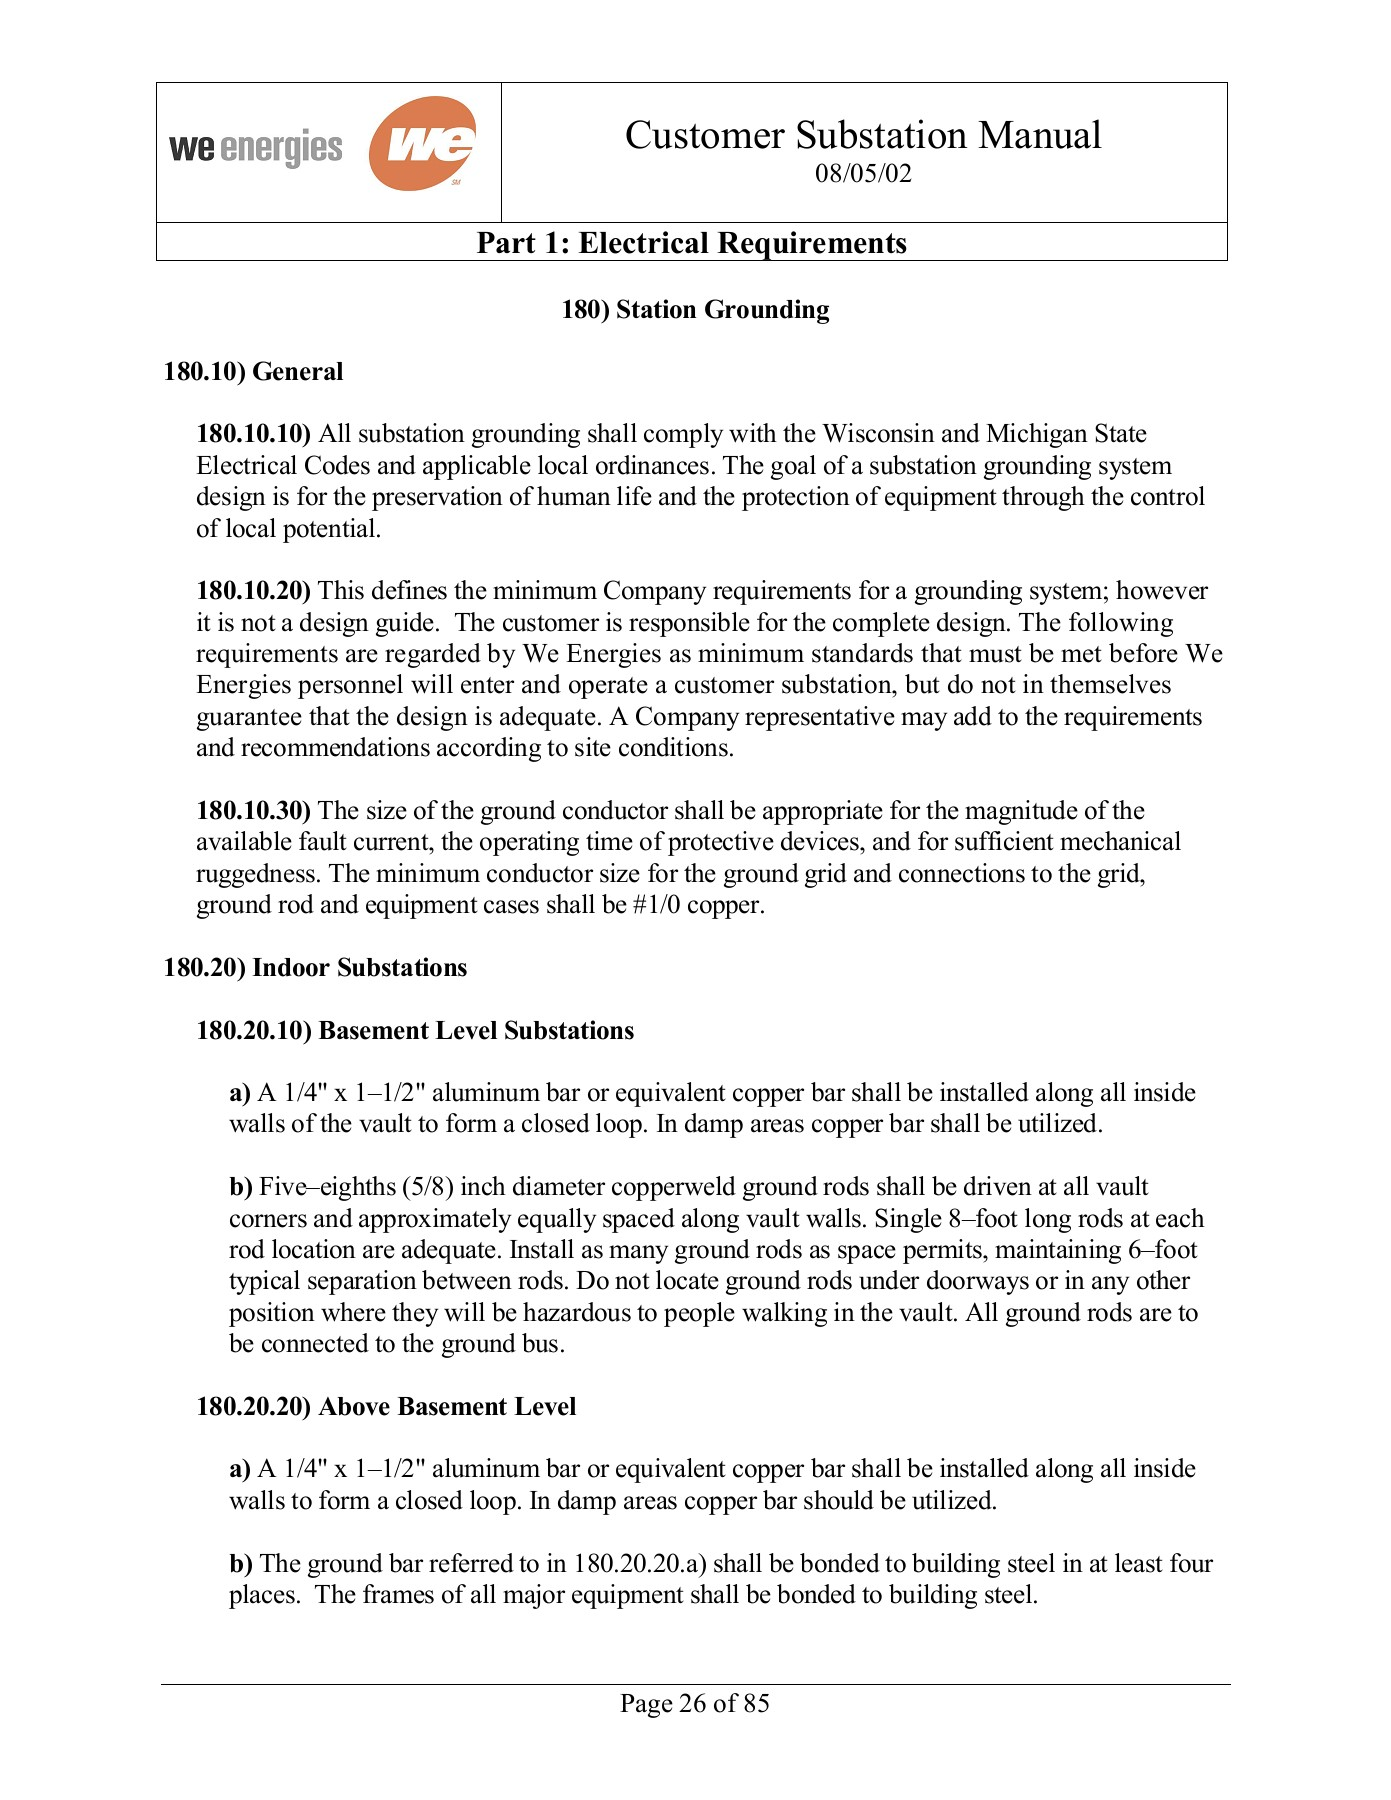 Part 1: Electrical Requirements - We Energies Pages 1 - 4